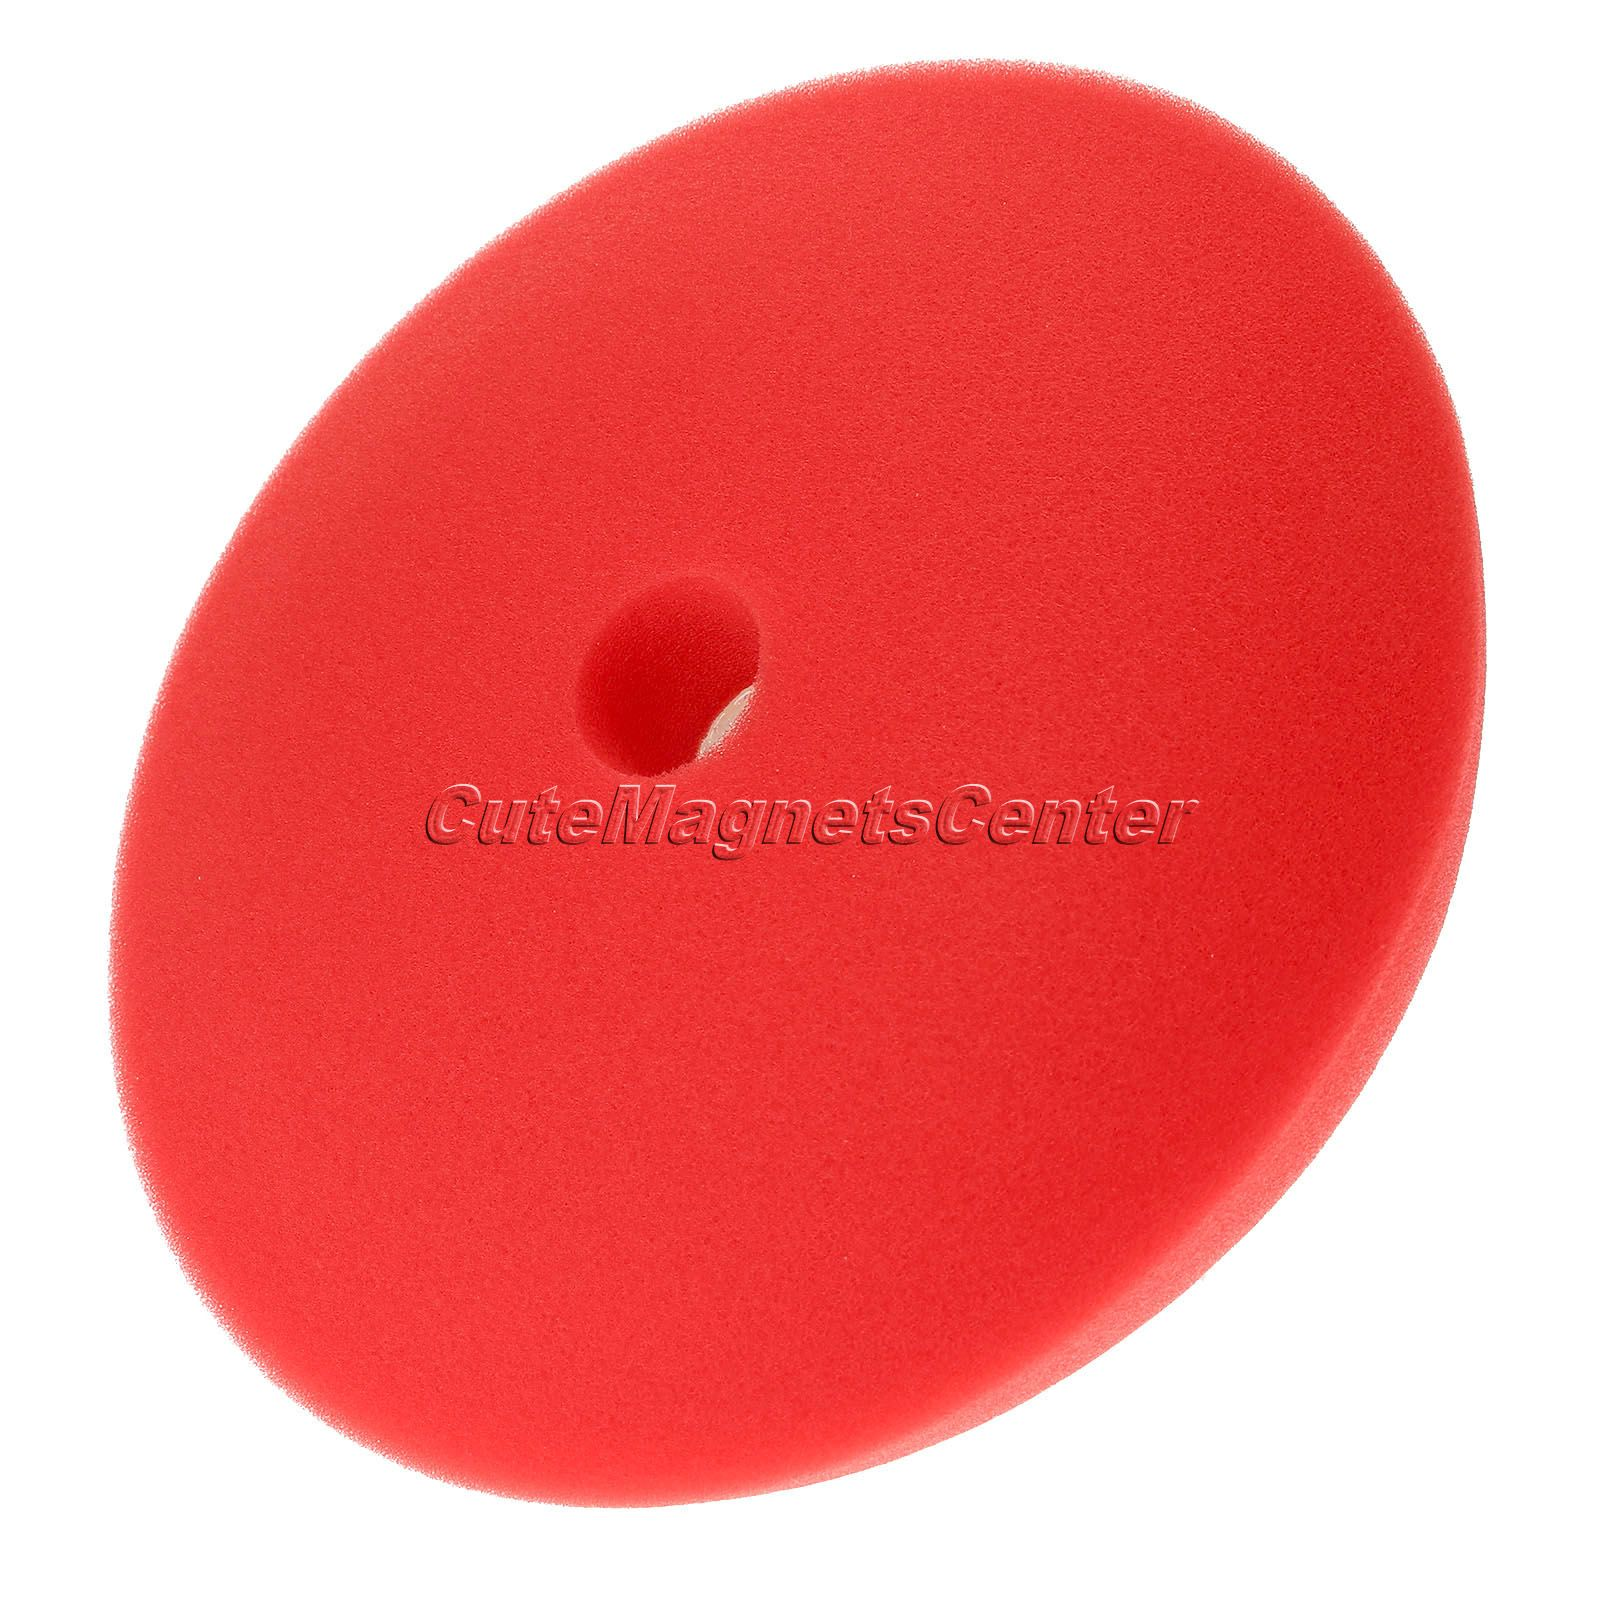 1Pc For Car Cleaning Foam Polishing Buffing Pads Soft 6 inch Wash Polisher Sponge Detailing Waxing Car Styling Tool Accessories(China (Mainland))